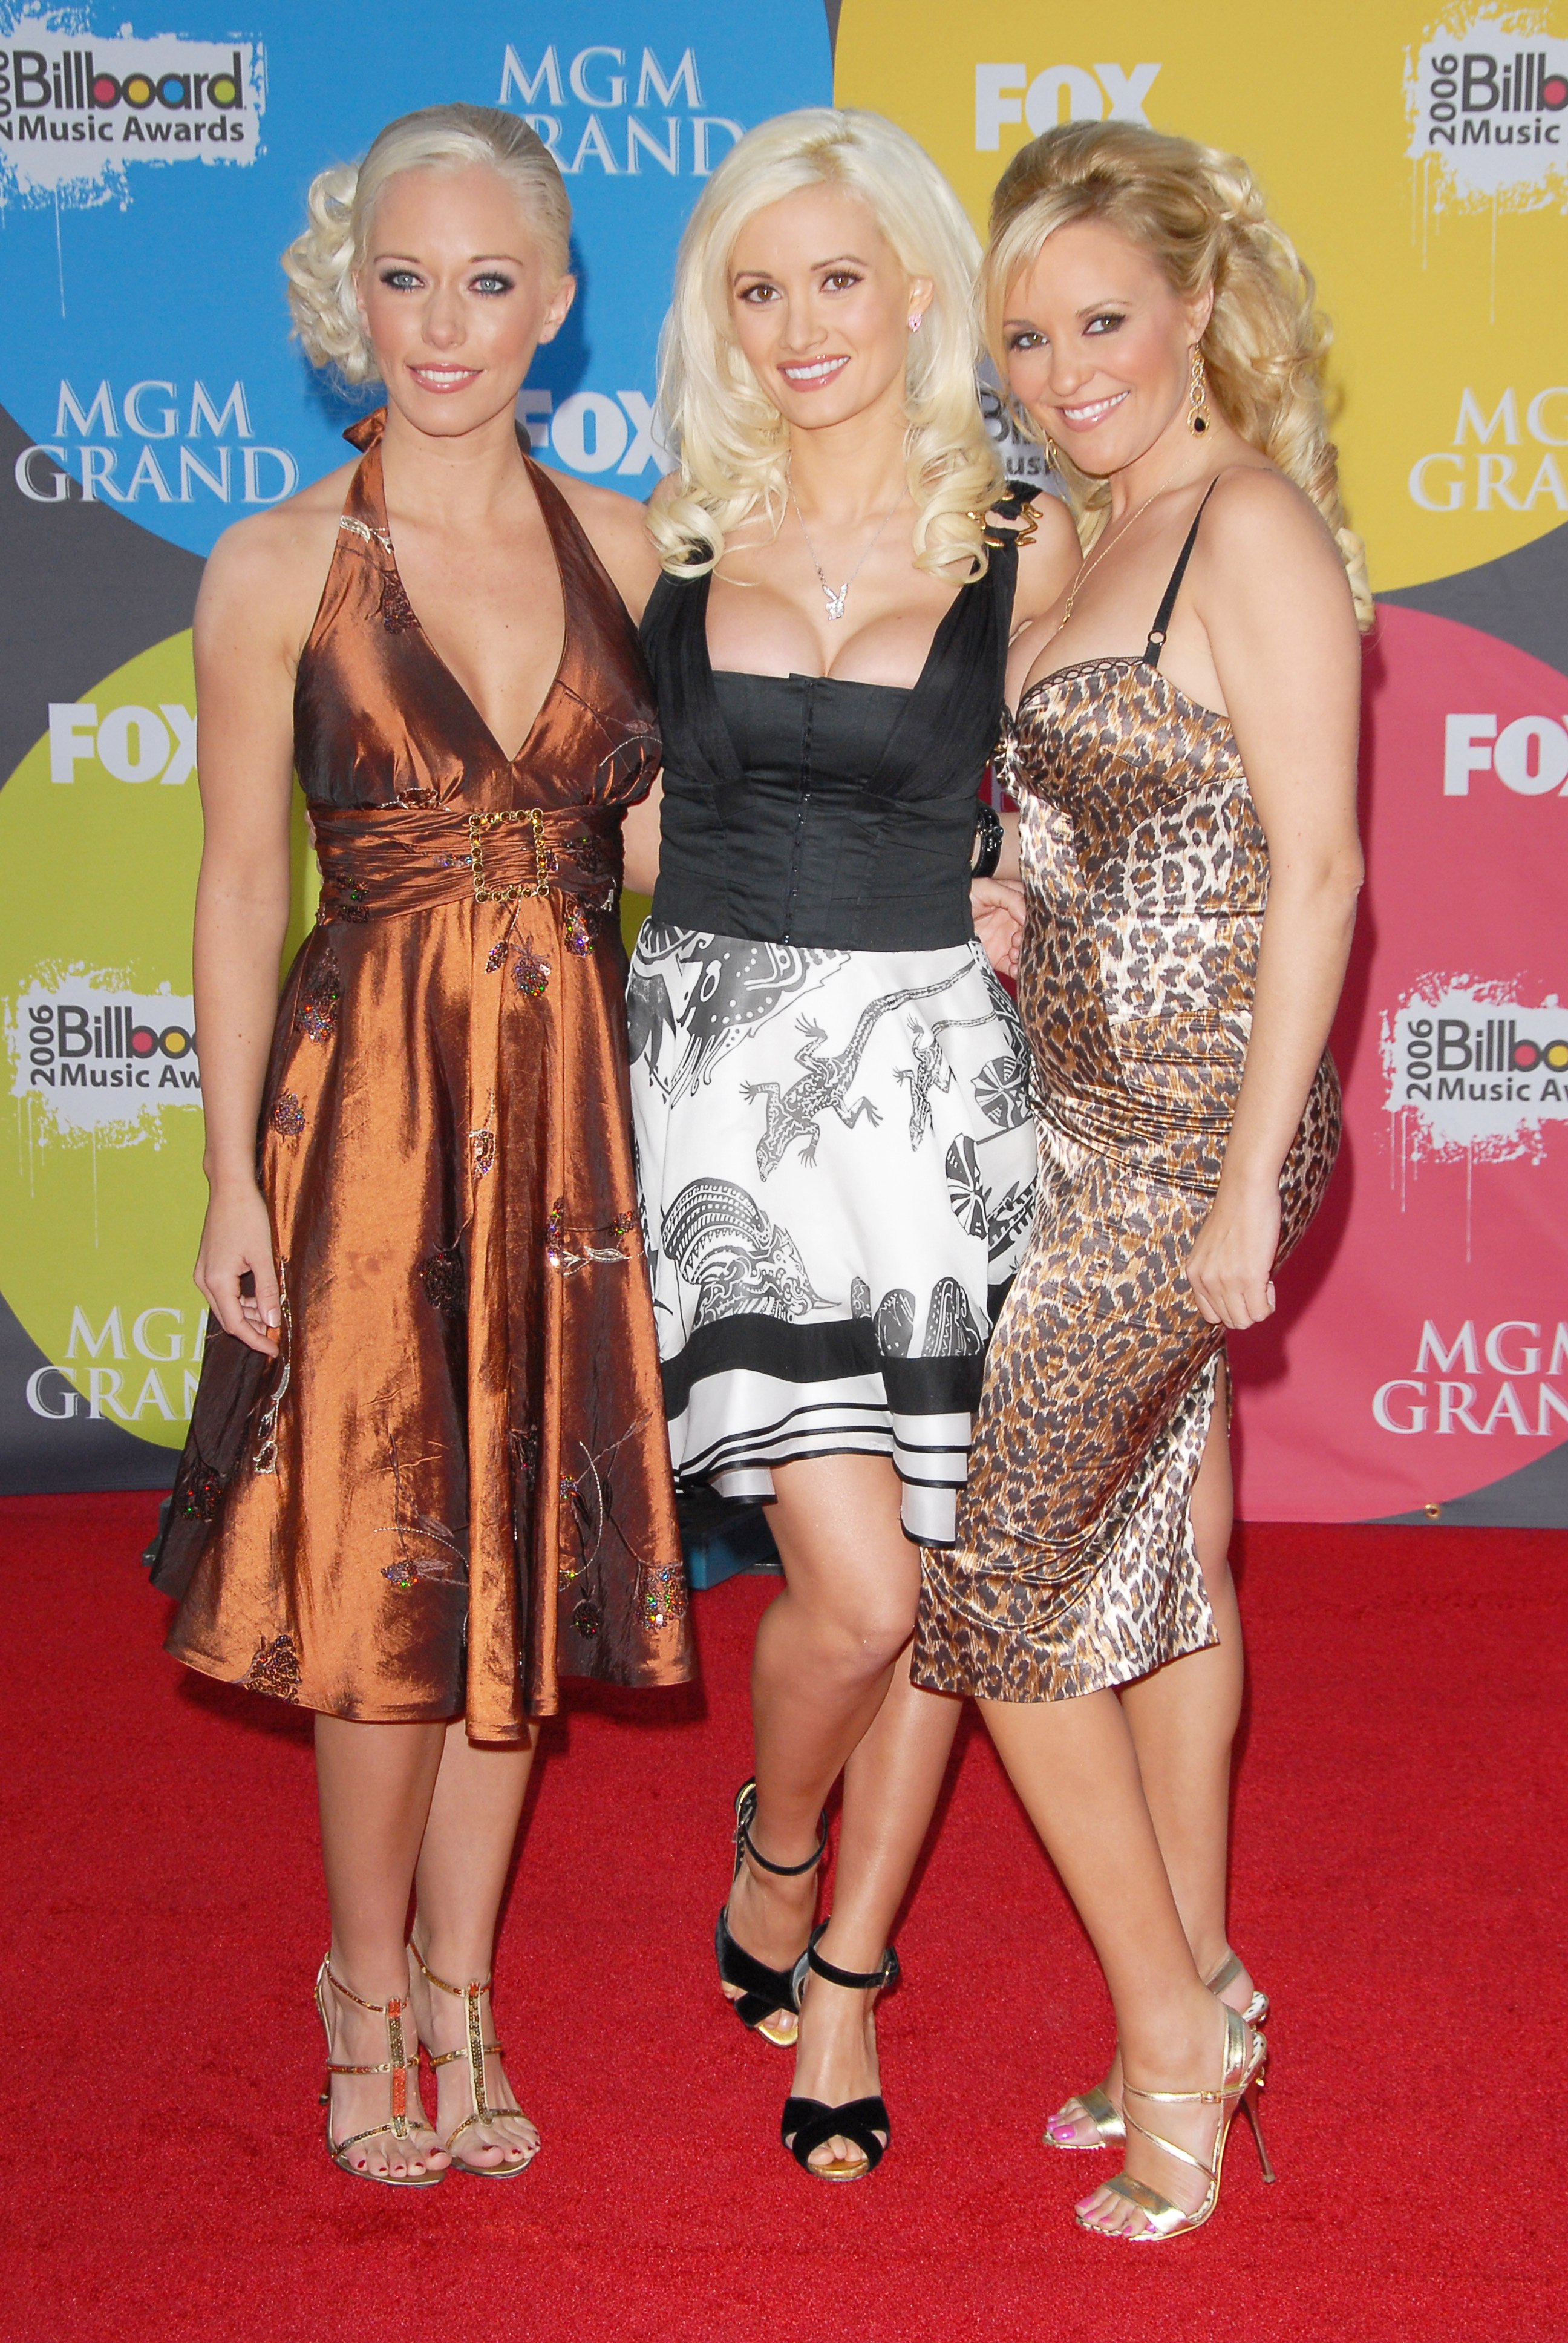 Holly Madison Wedding.Holly Madison And Kendra Wilkinson Will Attend Bridget Marquardt S